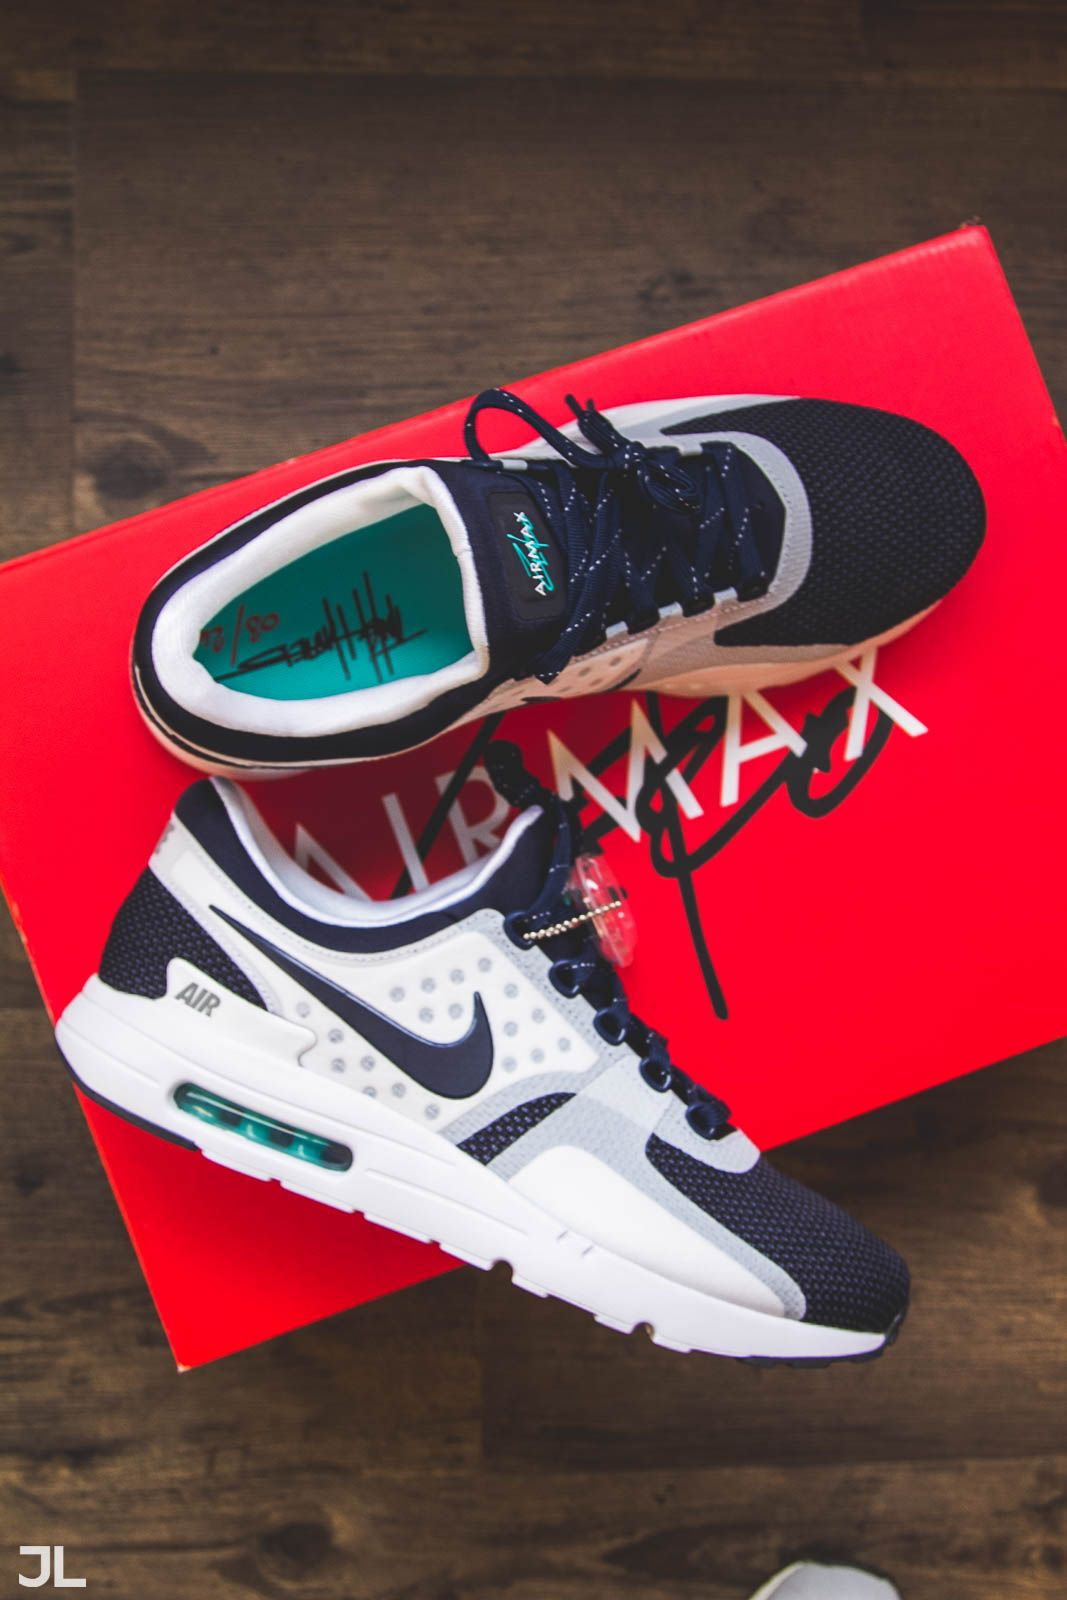 Nike Air Max Zero Website For nike shoes outlet! Super